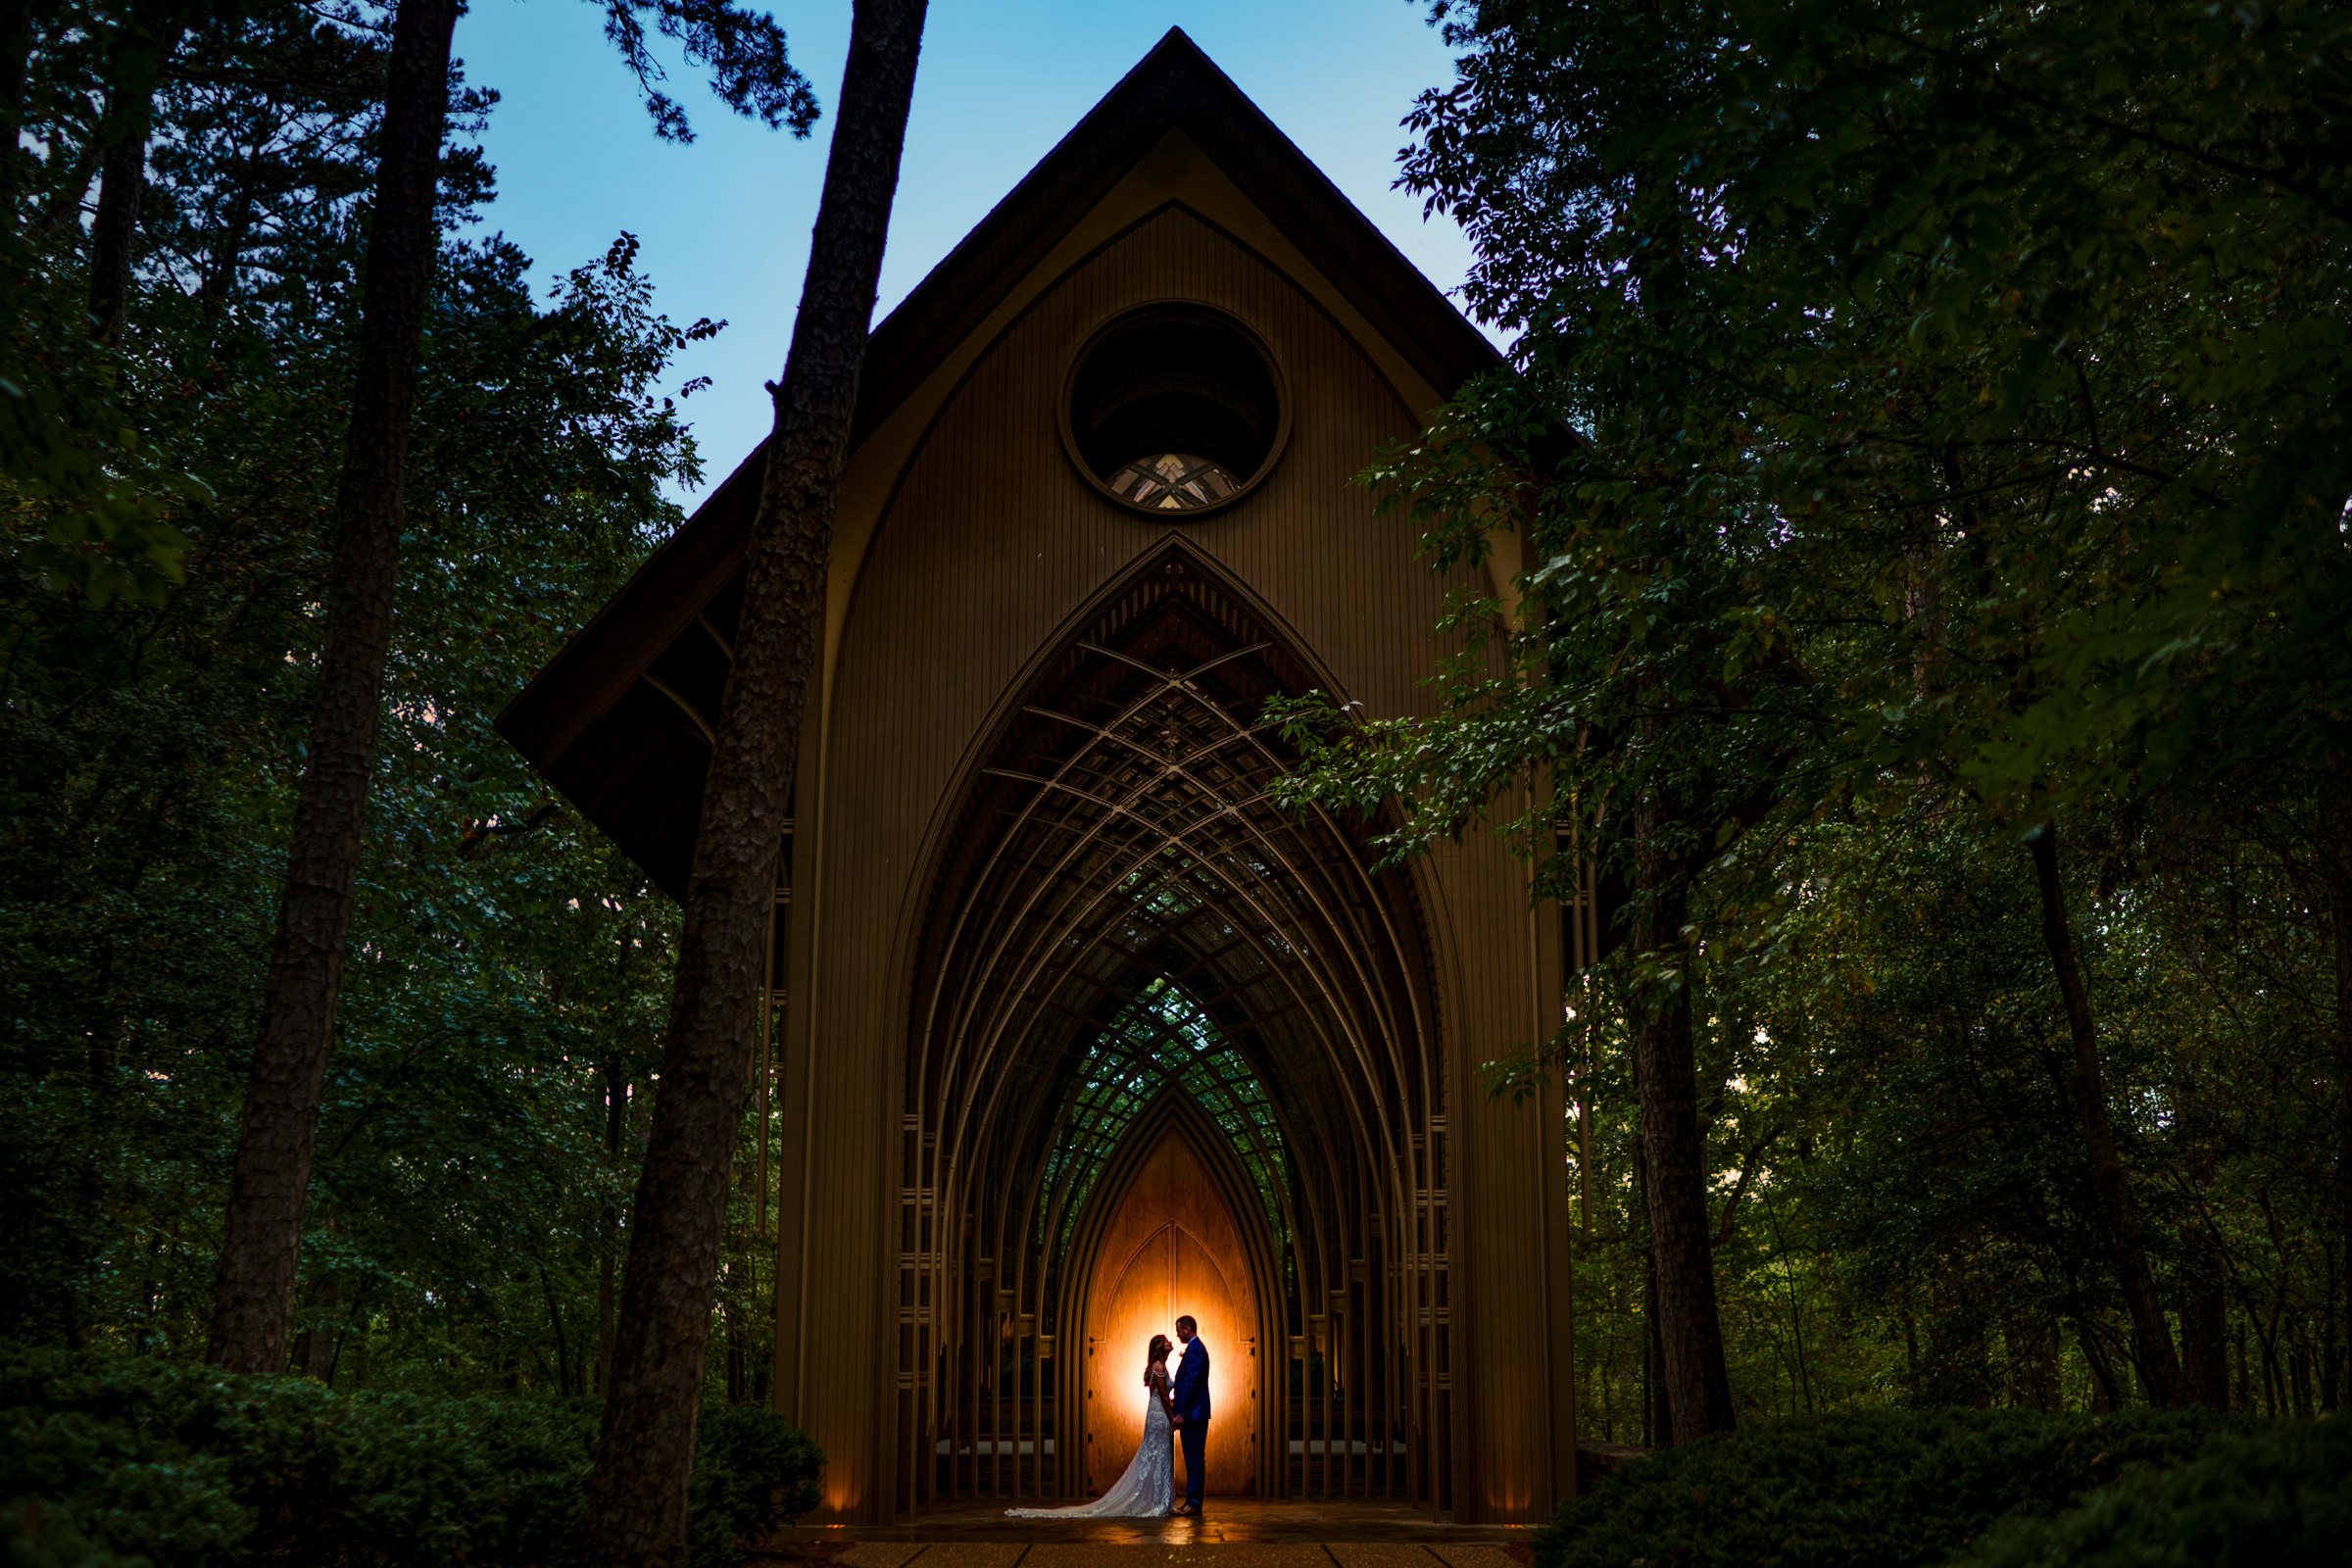 bride and groom silhouette shadowed by the forest-Arkansas photographer- photo by Vinson Images